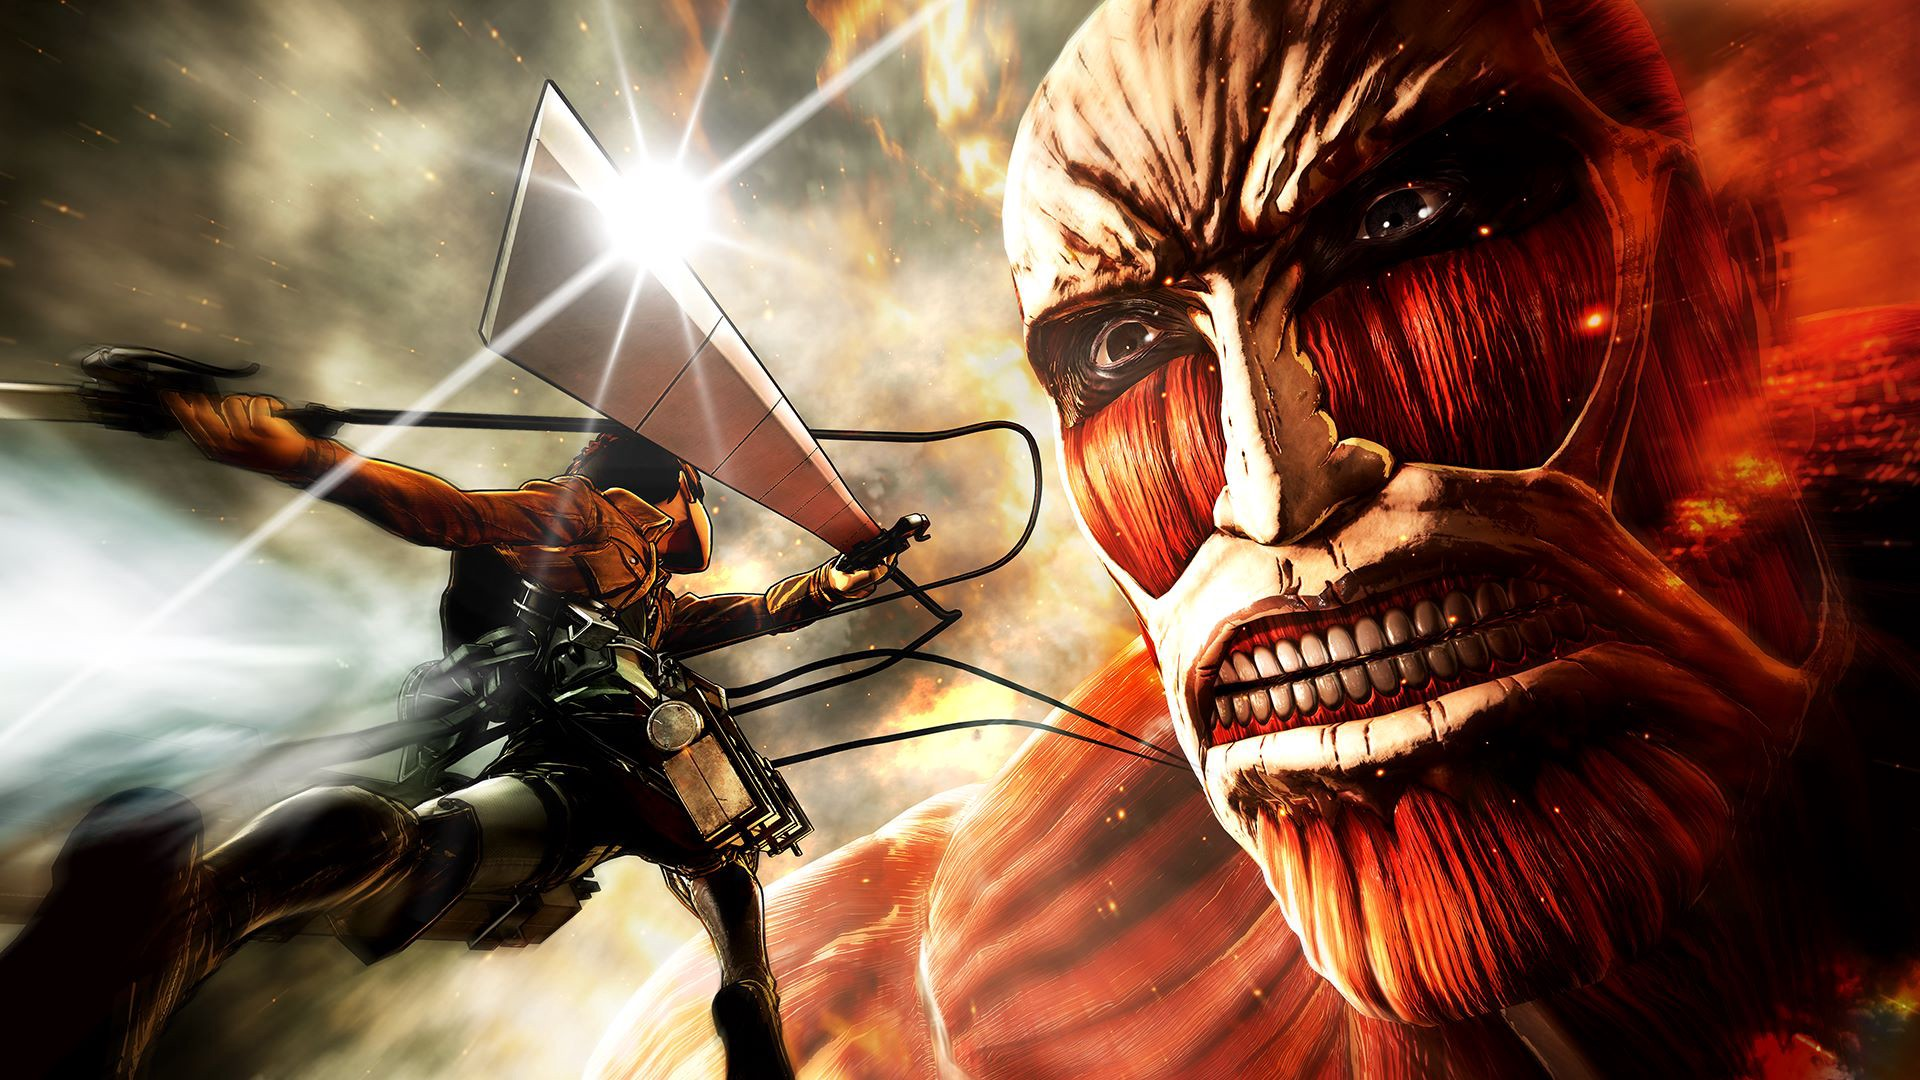 Attack on Titan Chapter 139 Fake Spoilers and Leaks Alert